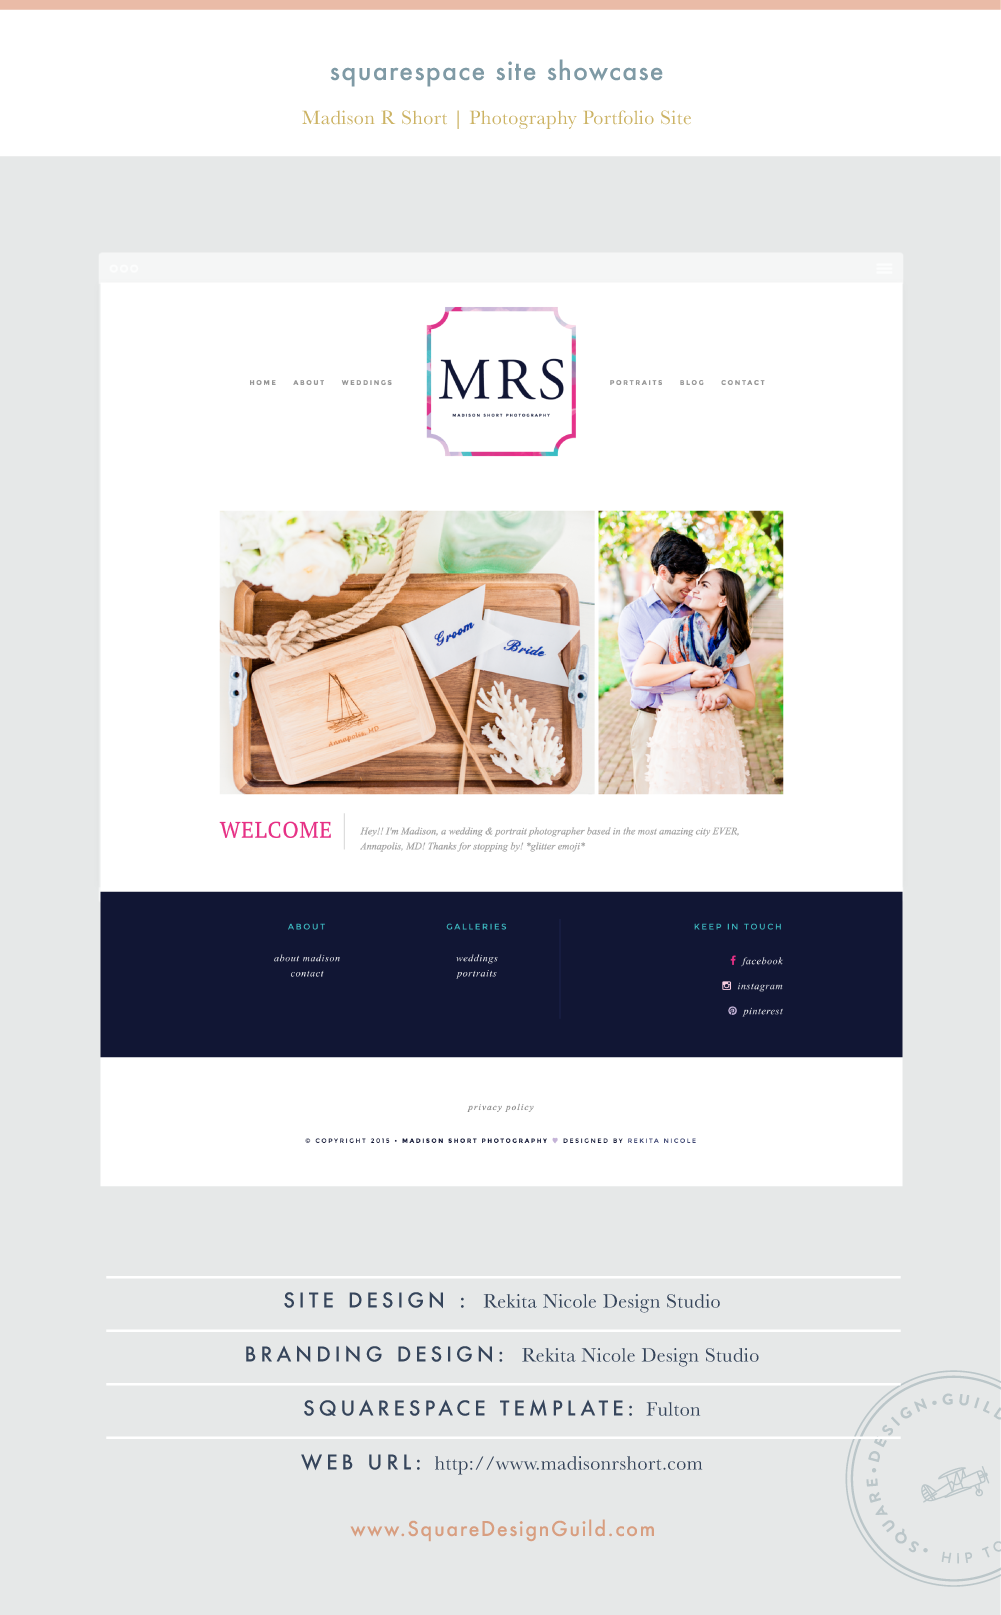 Square Design Guild | Site Showcase | Madison R Short Photography by Rekita Nicole on the Fulton Template